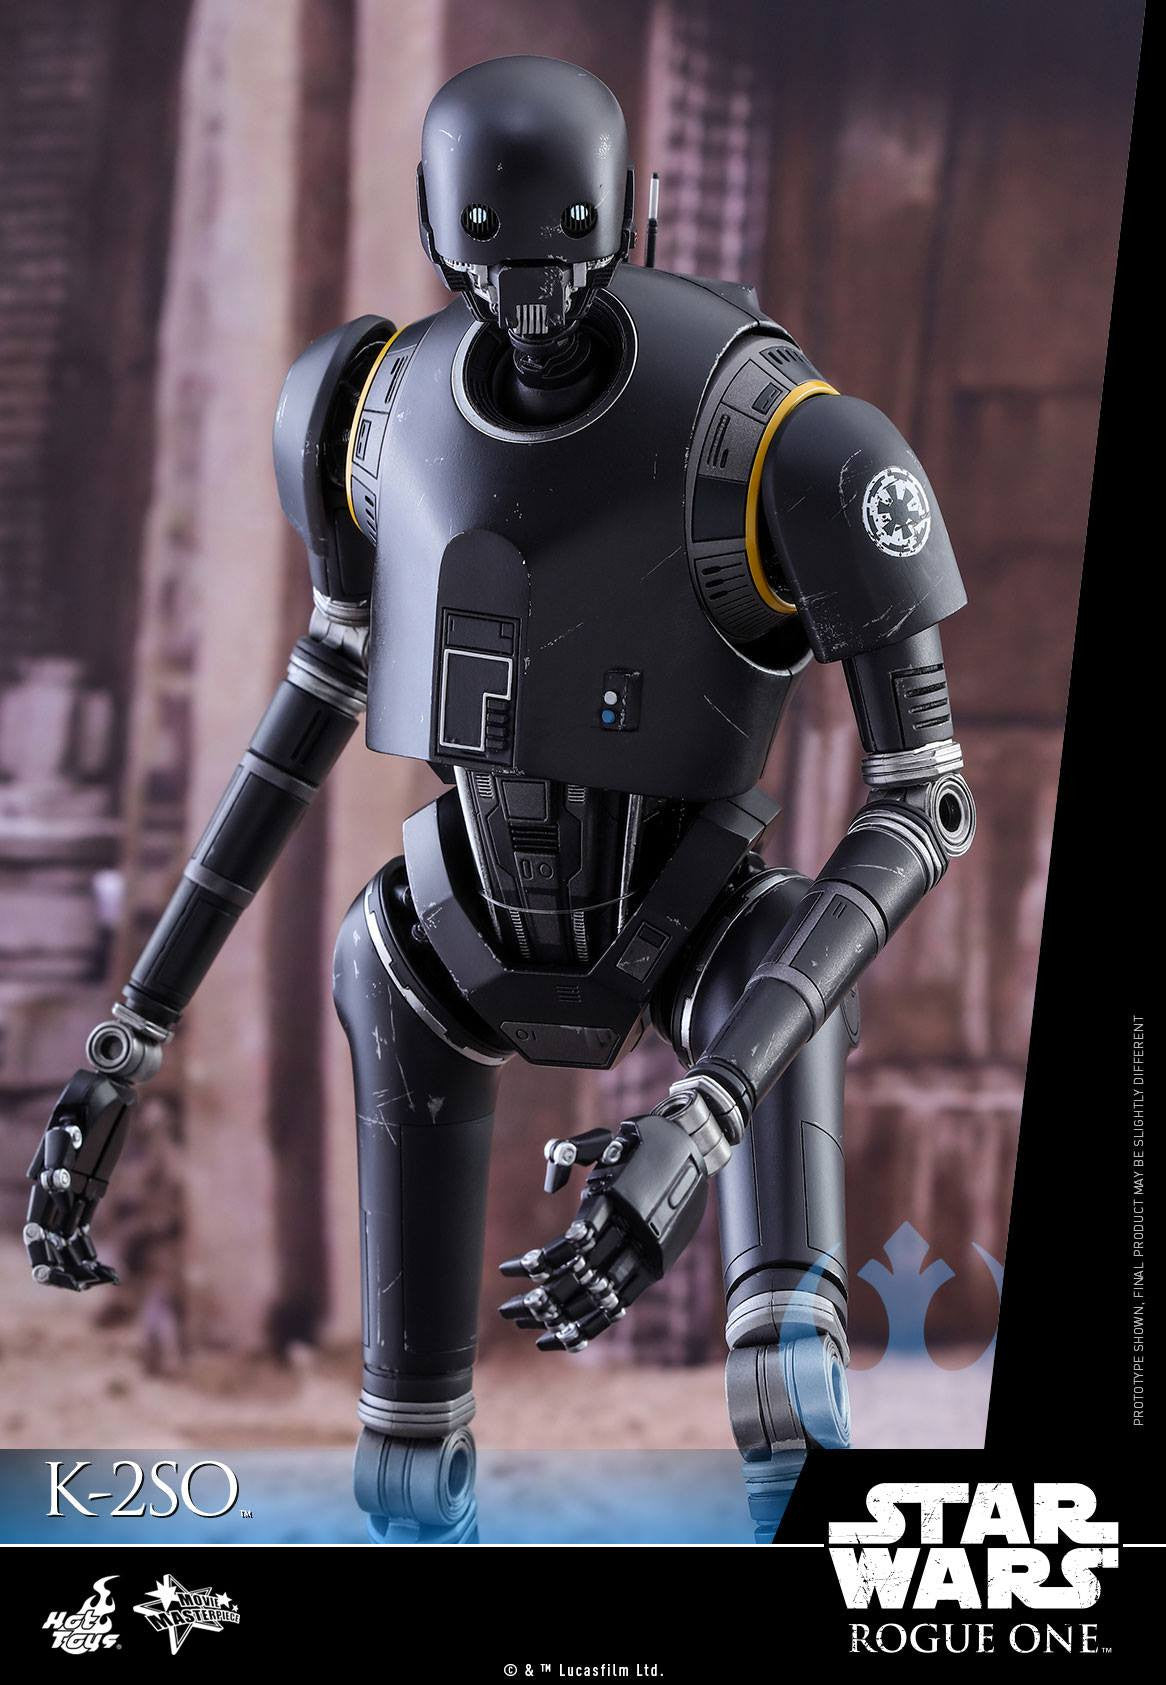 Hot Toys - MMS406 - Rogue One: A Star Wars Story - K-2SO - Marvelous Toys - 8